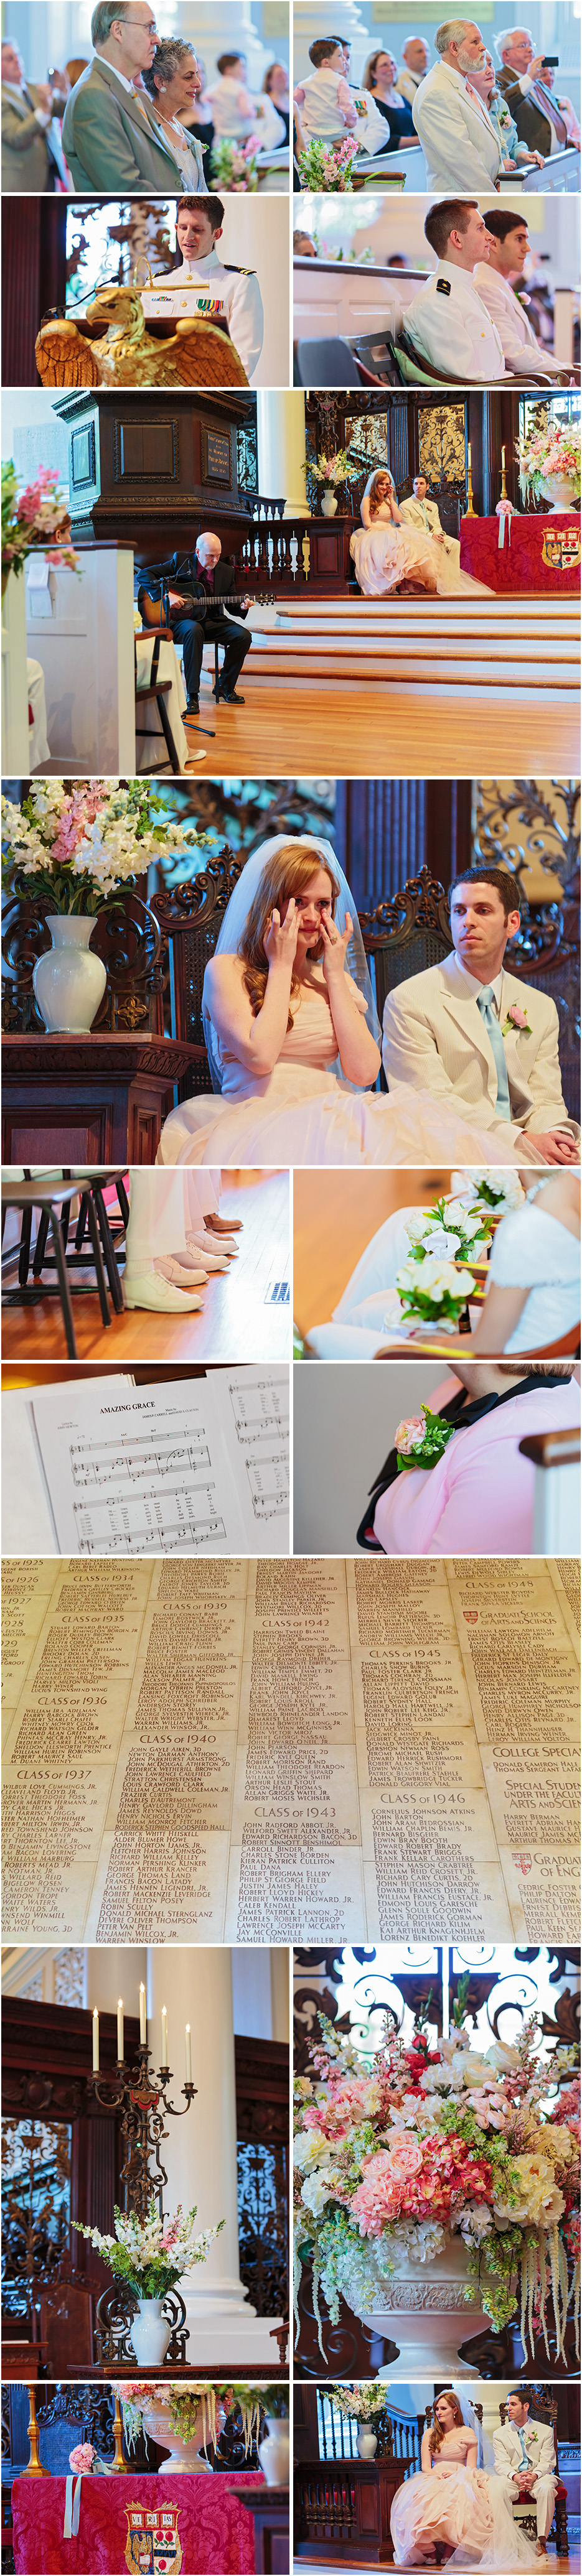 HARVARD MEMORIAL CHURCH WEDDING | CAITLIN AND AARON